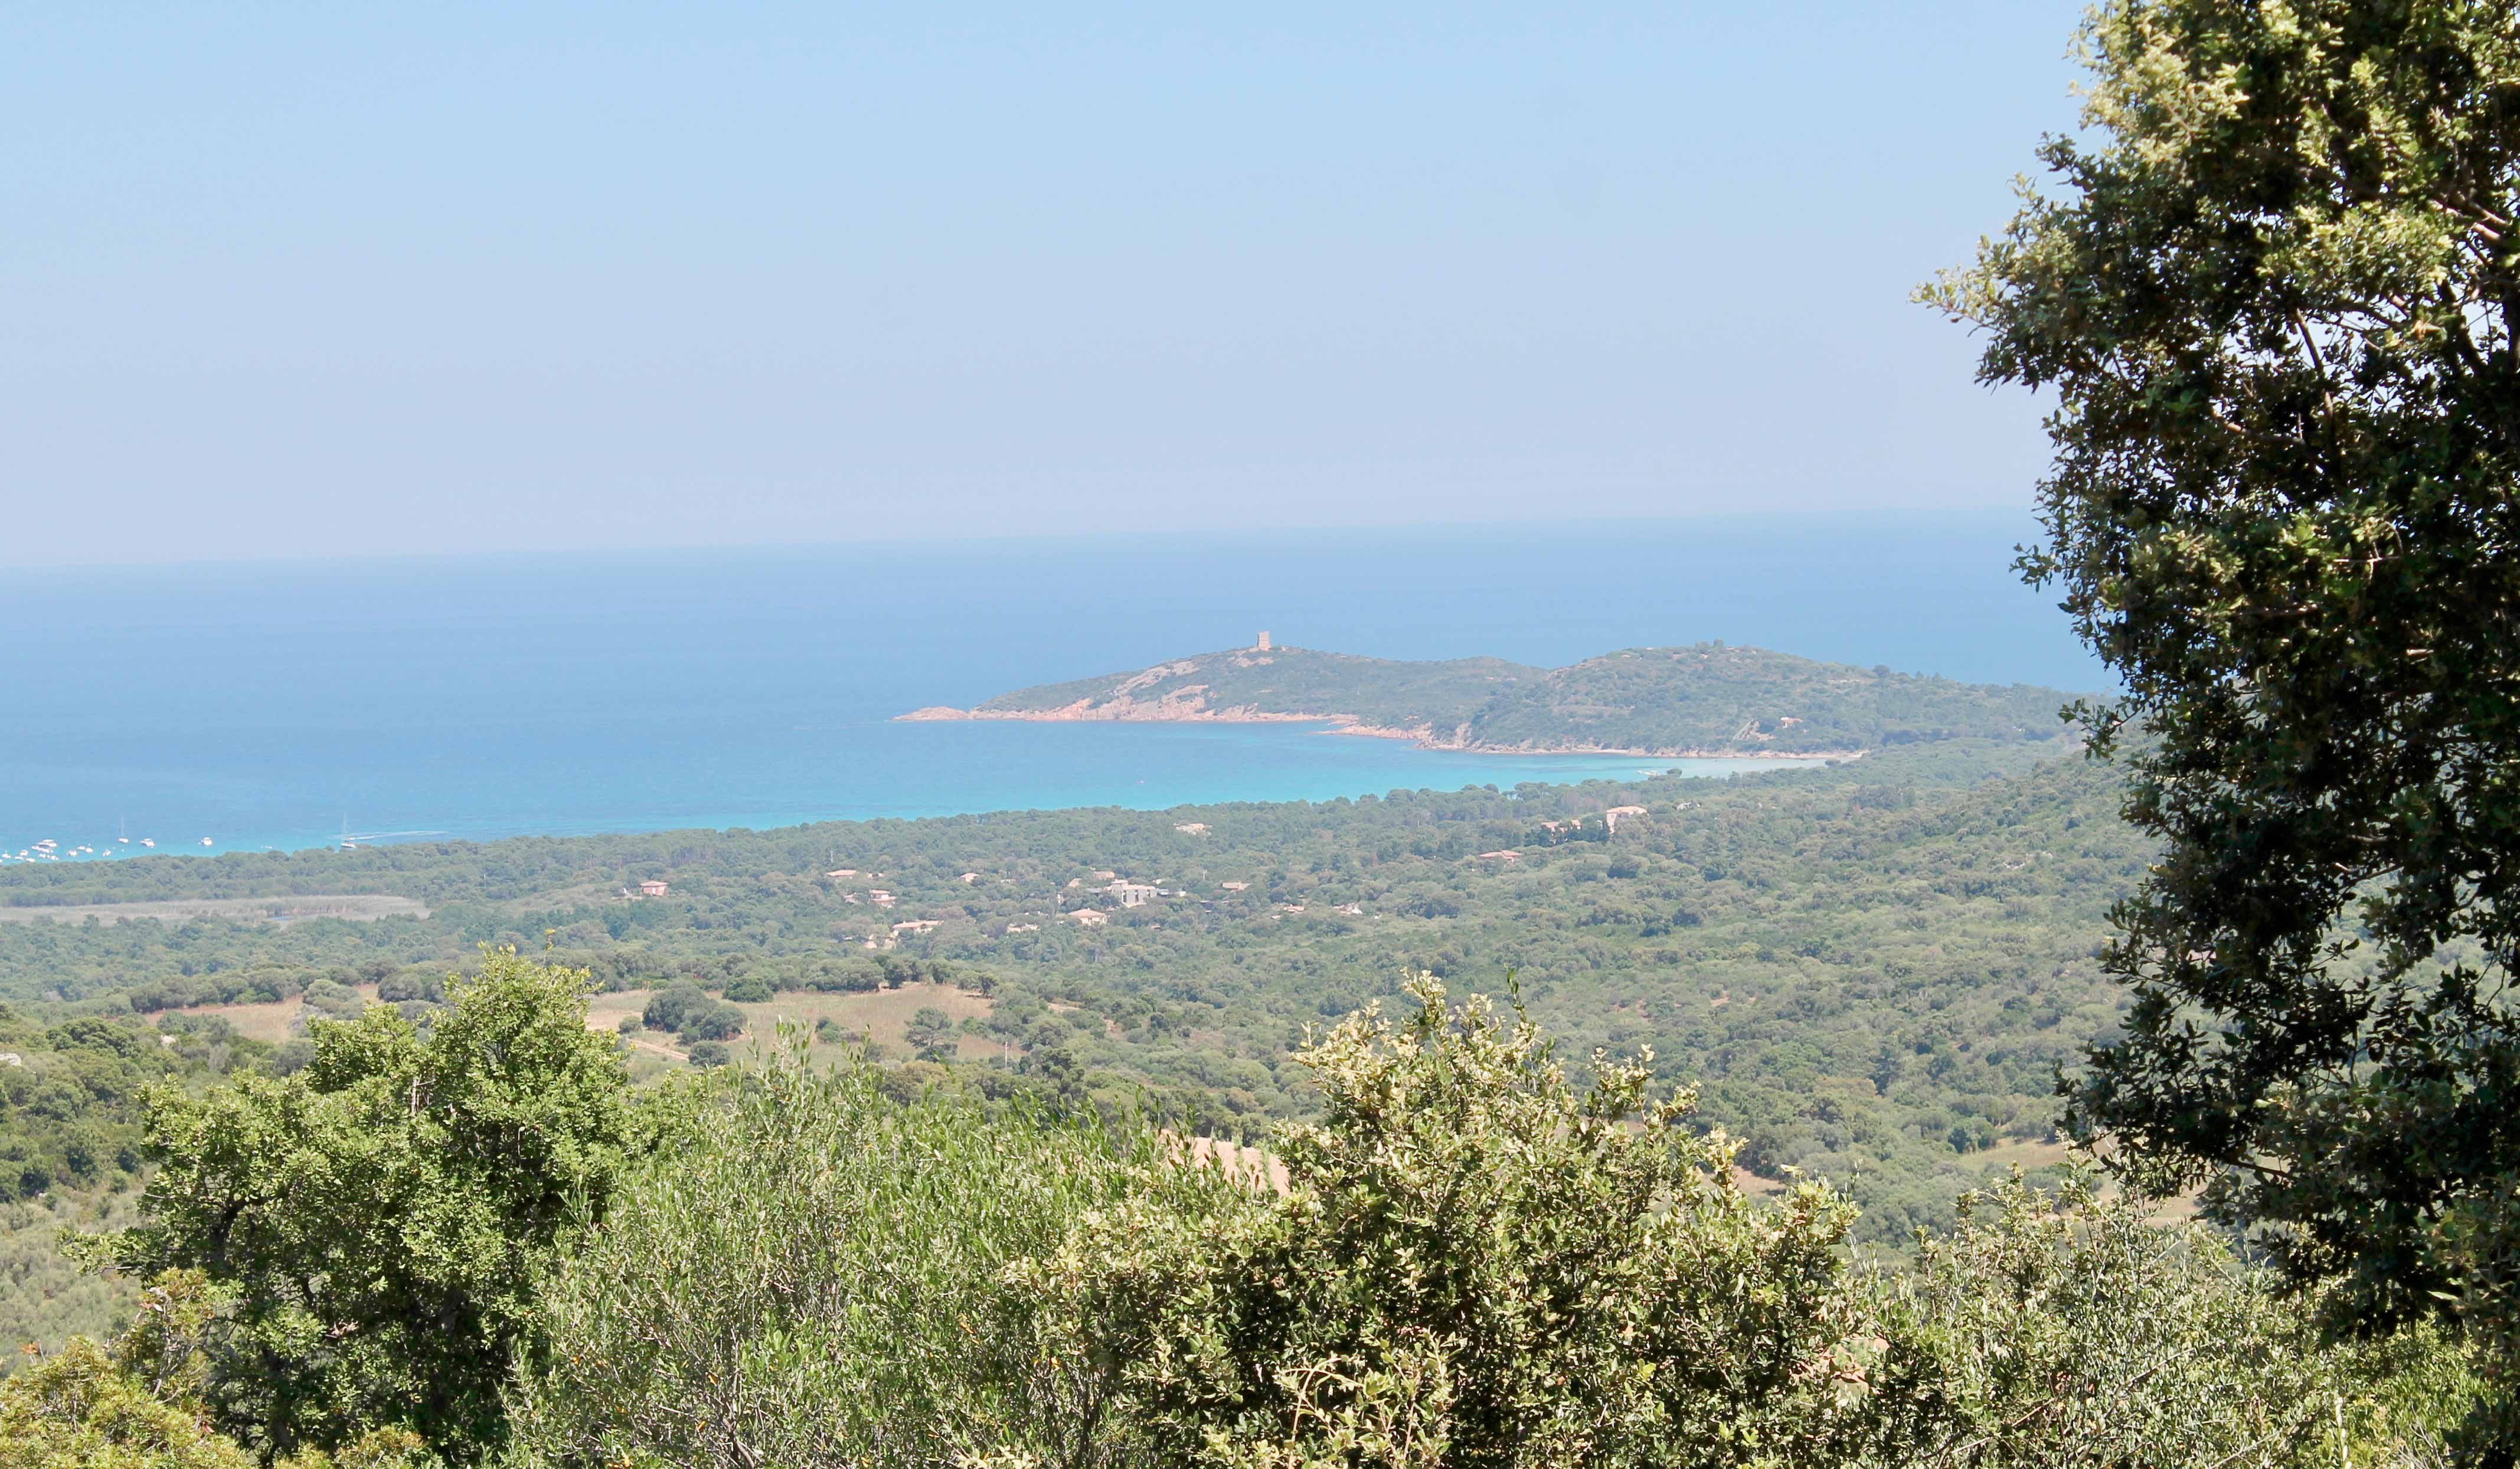 Corsica wine tour, view from the mountain